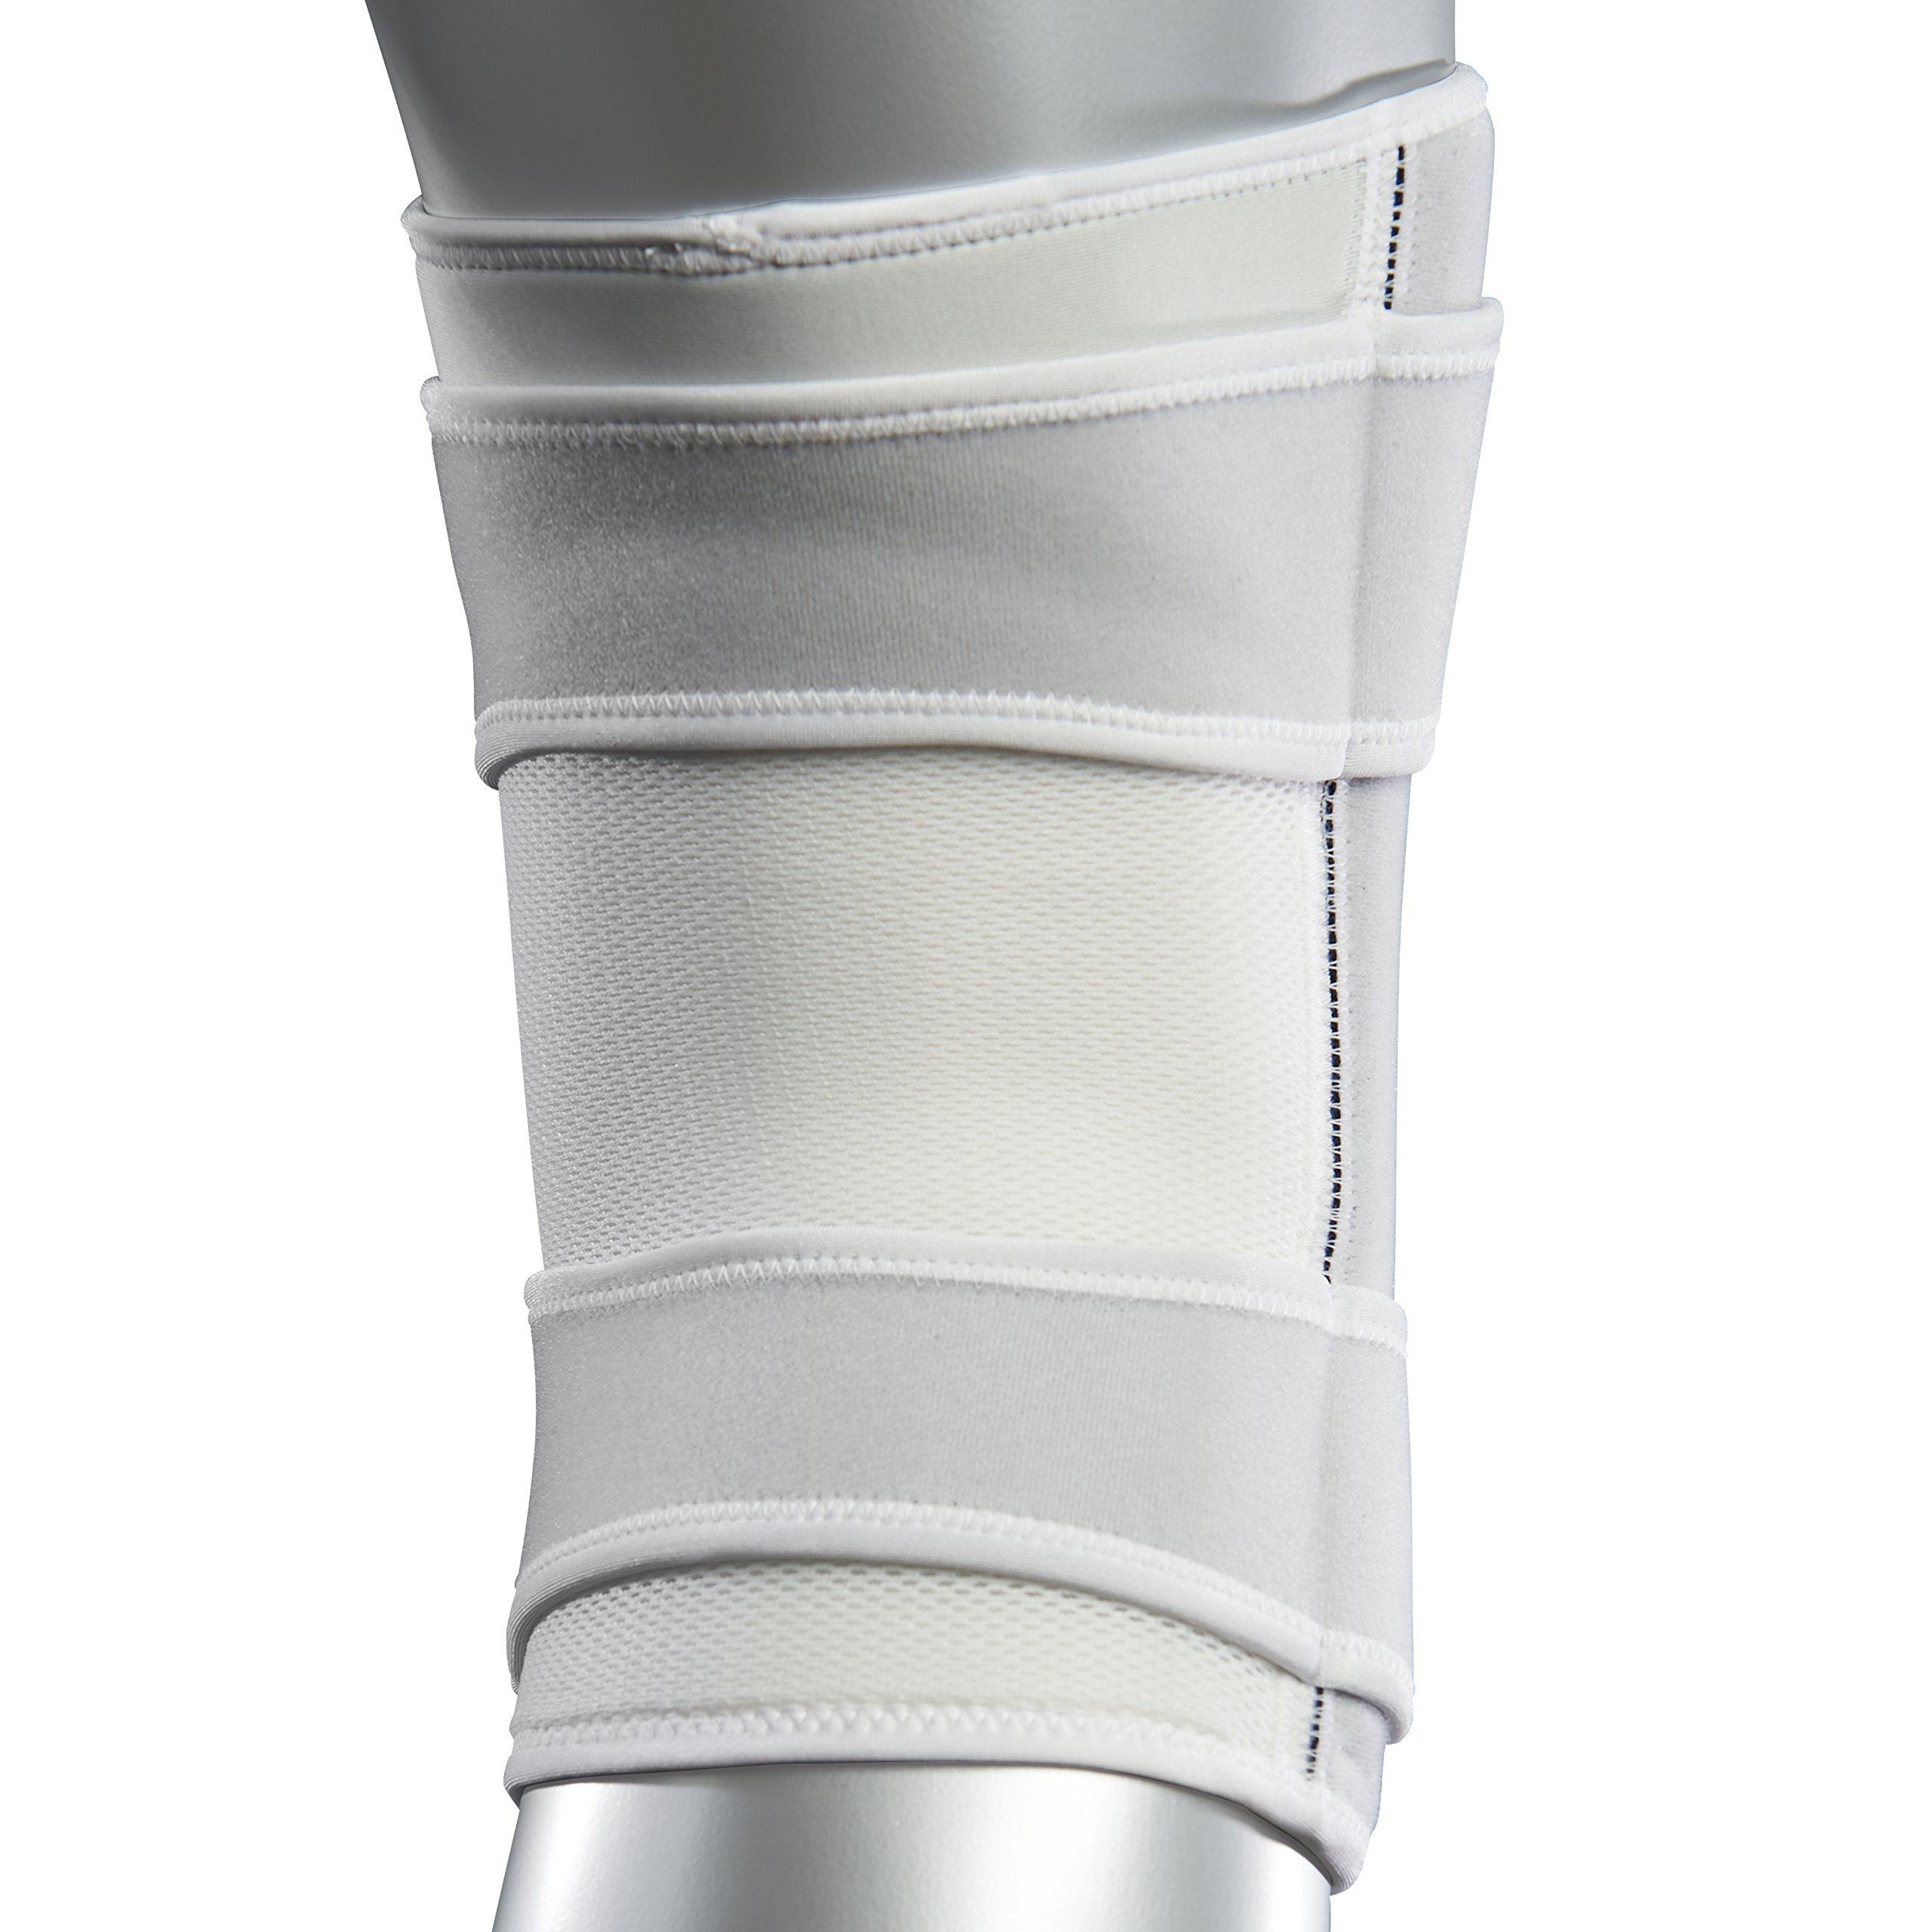 Zamst ZK-7 Knee Brace, White, X-Large by Zamst (Image #5)